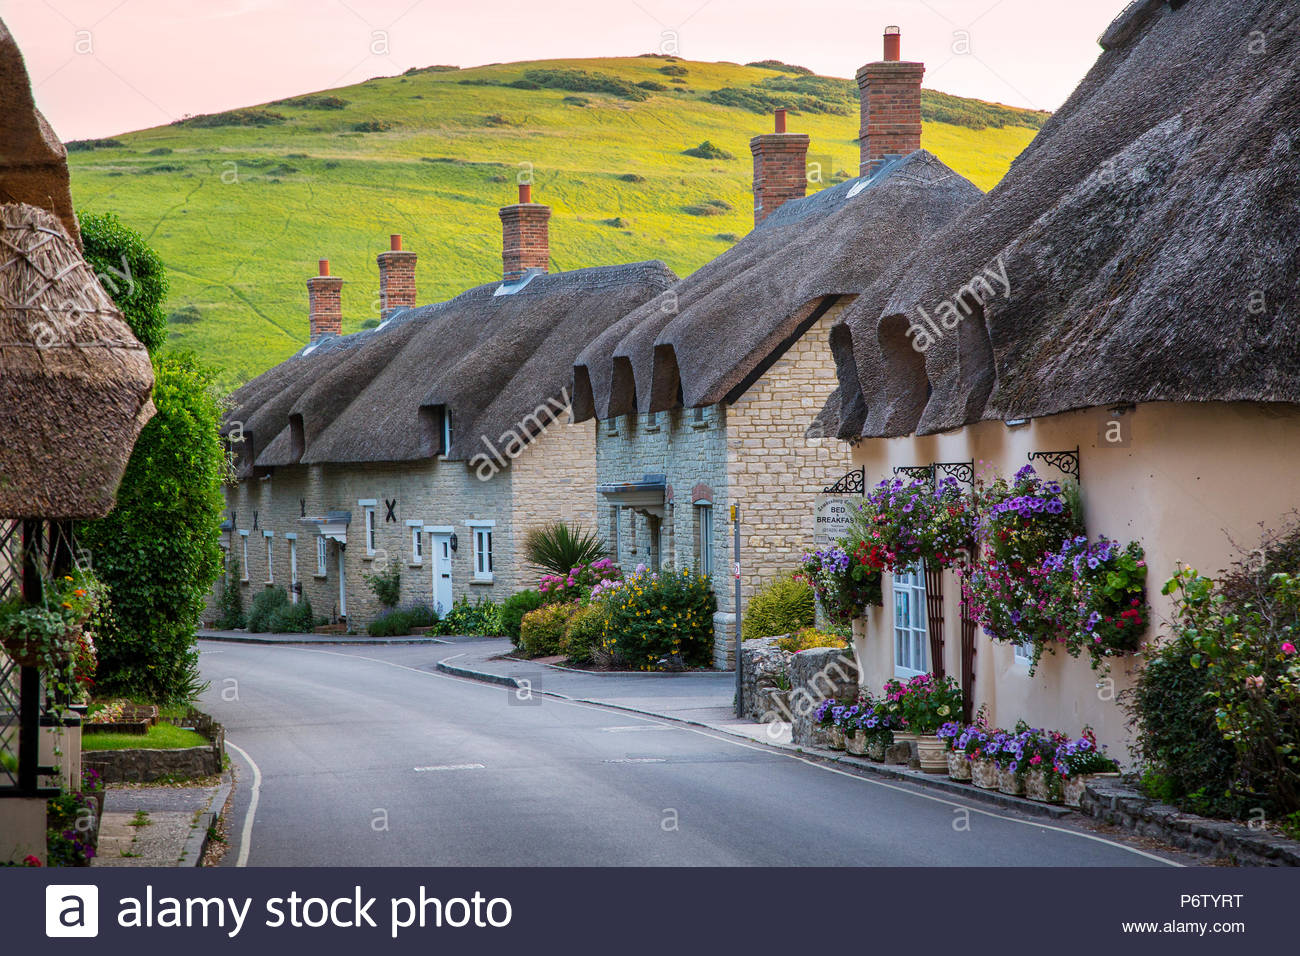 Thatched roof cottages in West Lulworth, Dorset, England - Stock Image